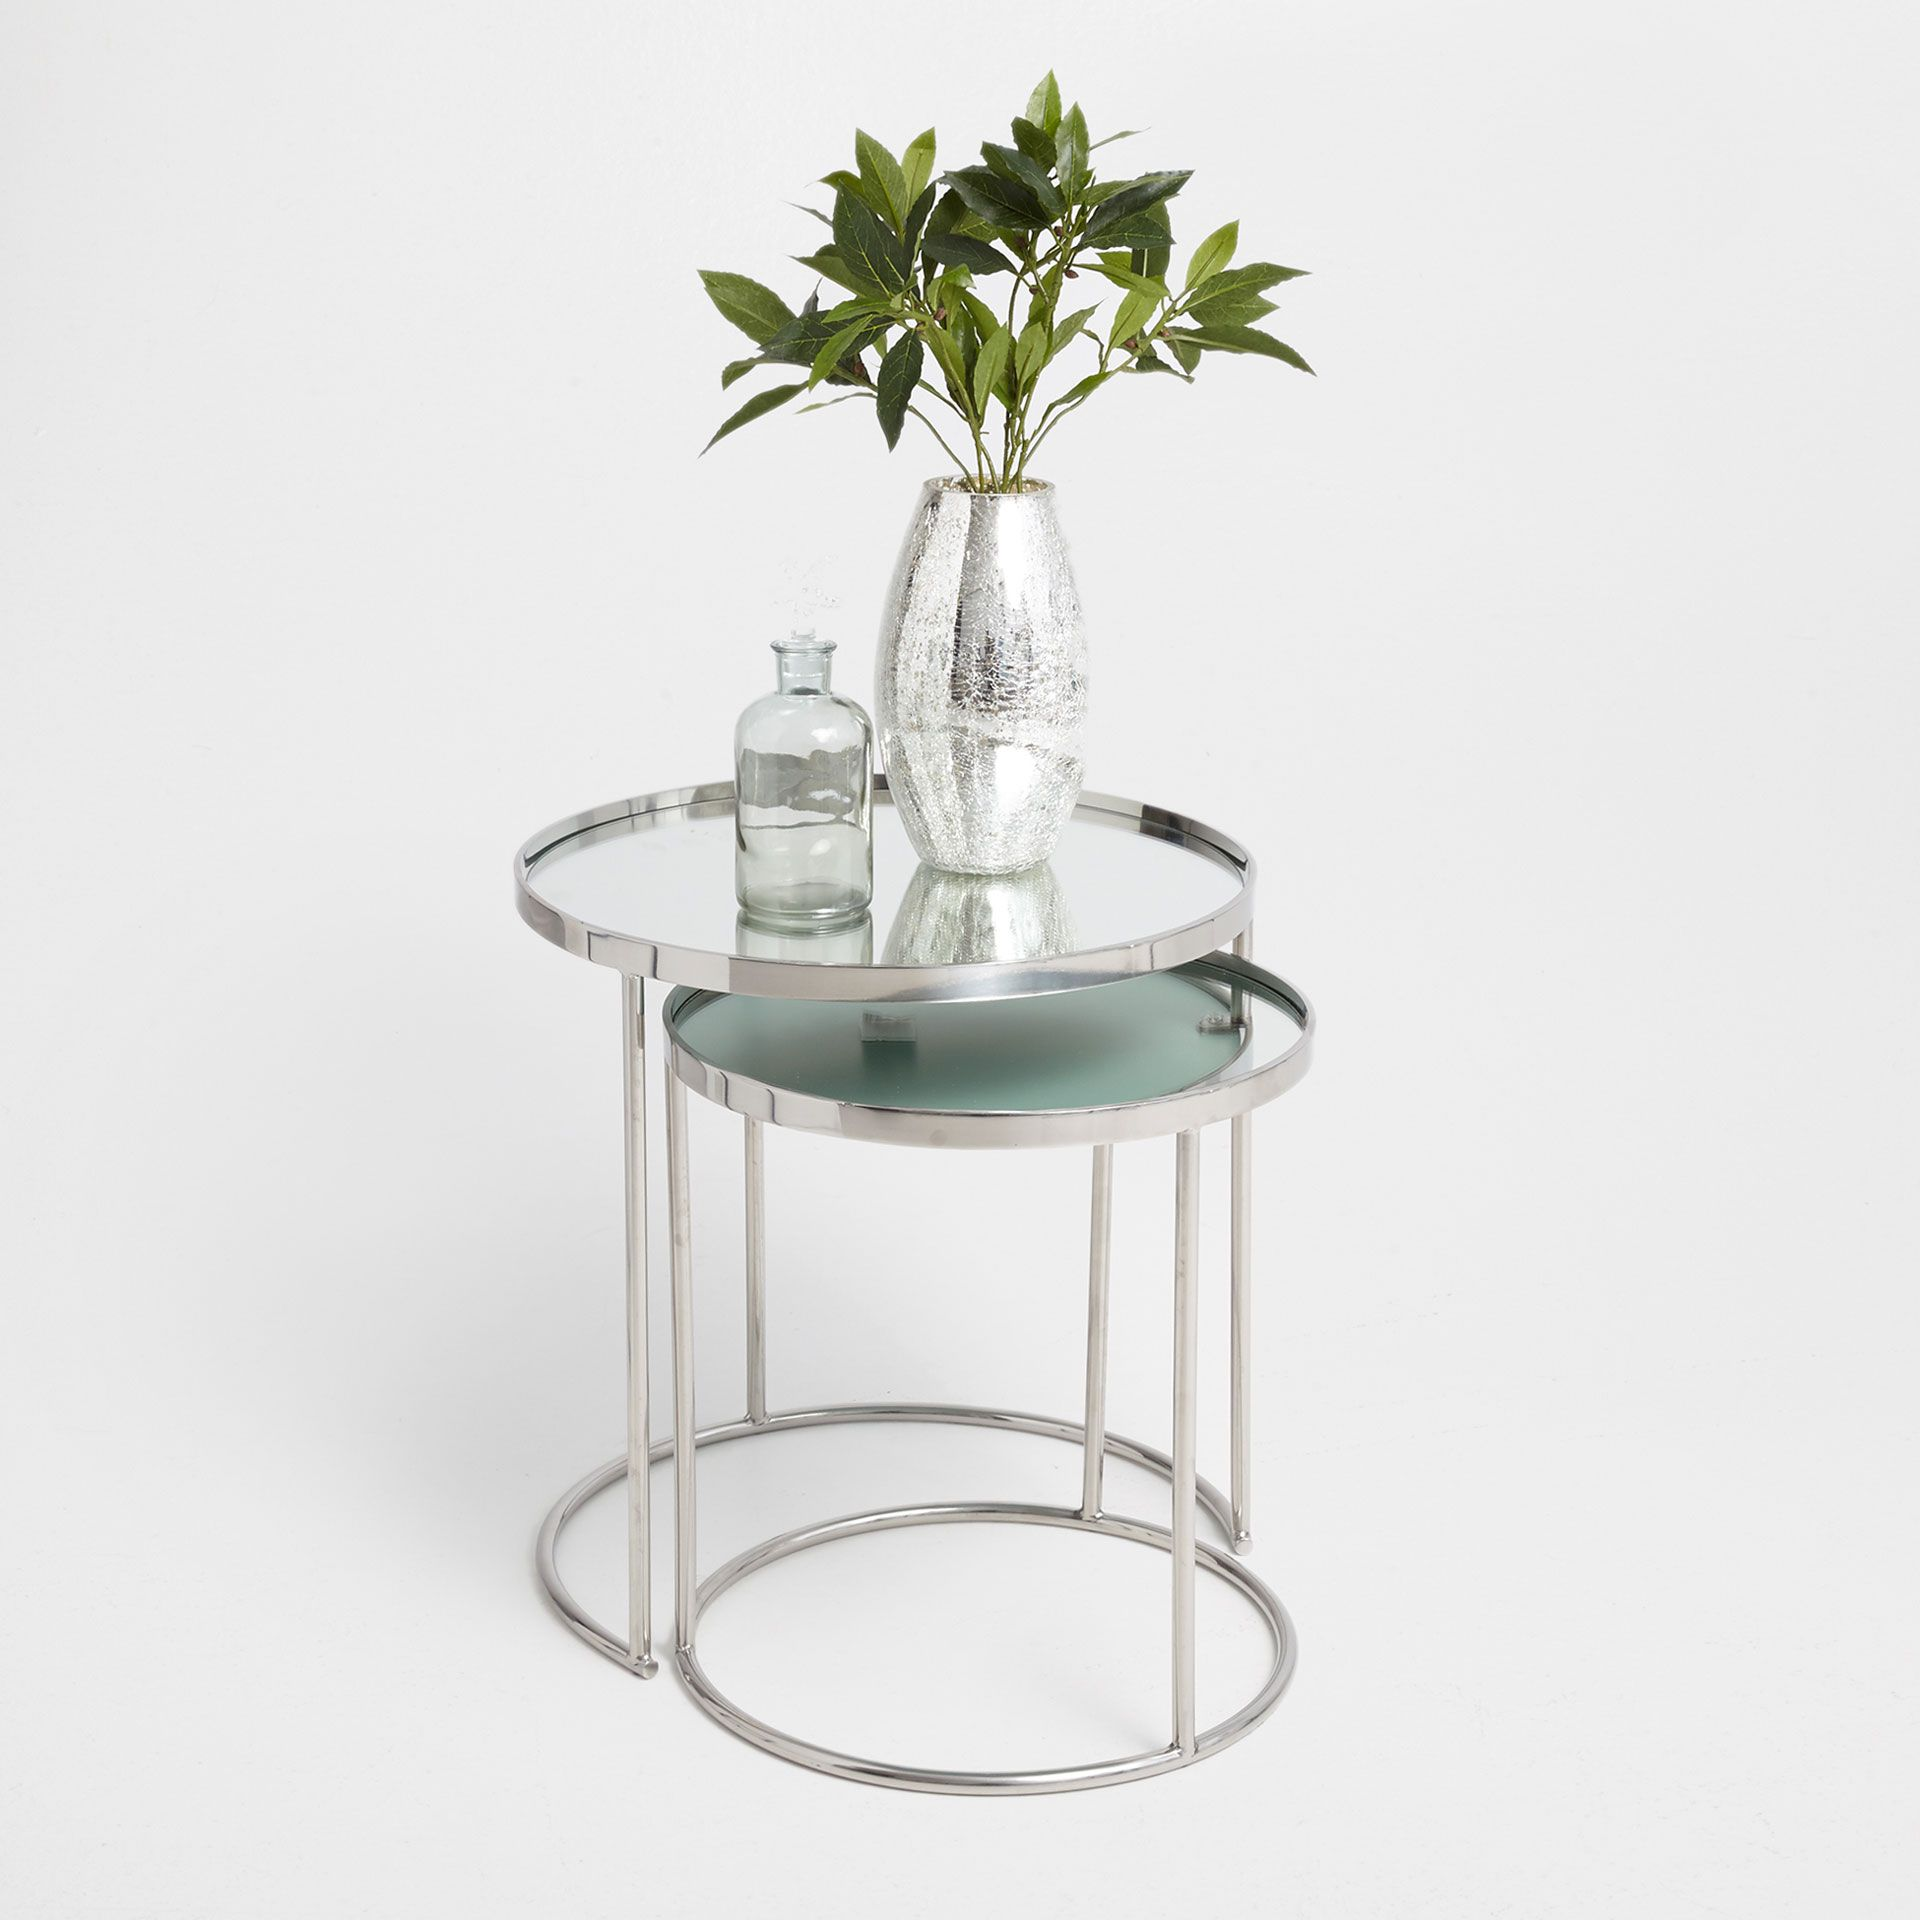 Image 1 Of The Product Round Silver Nest Of Tables Set Of 2 Furniture Table Nesting Tables [ 1920 x 1920 Pixel ]